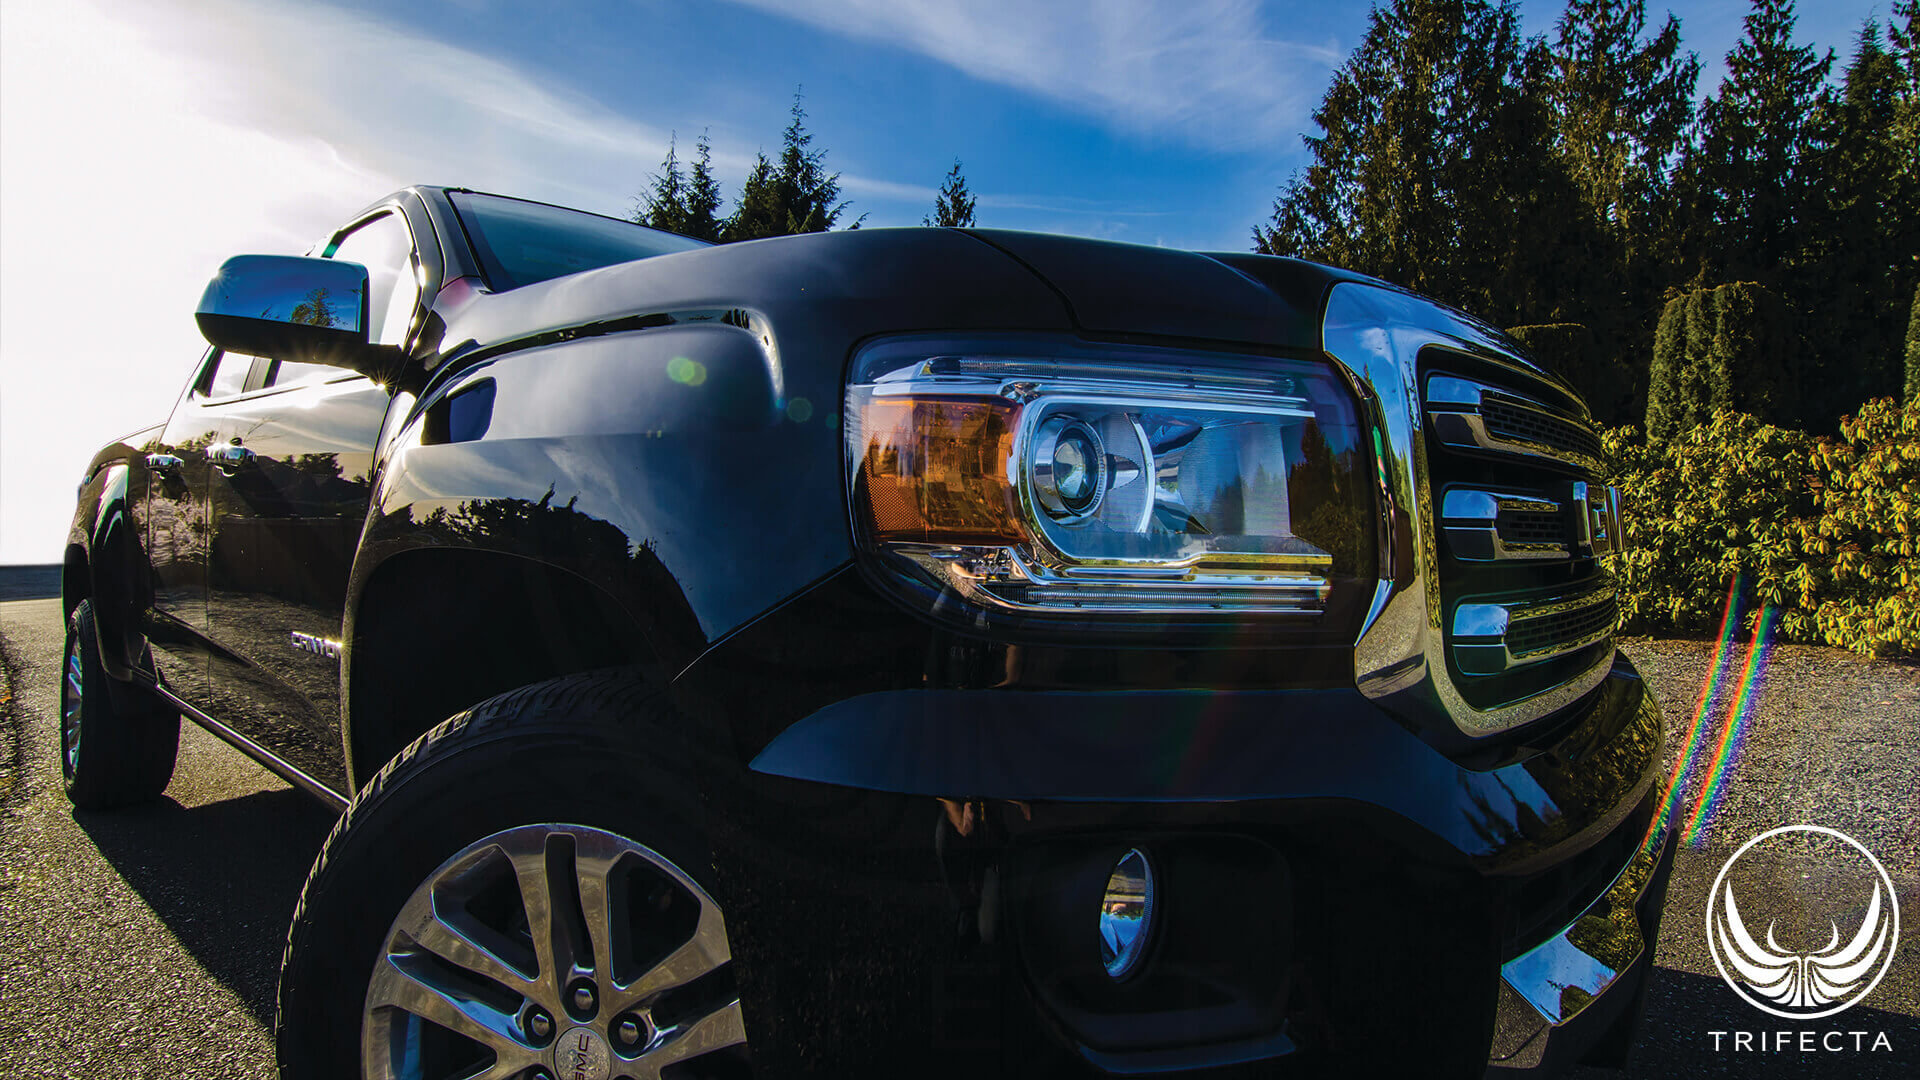 Trifecta Announcing Tuning Support For 2019 Chevrolet Colorado